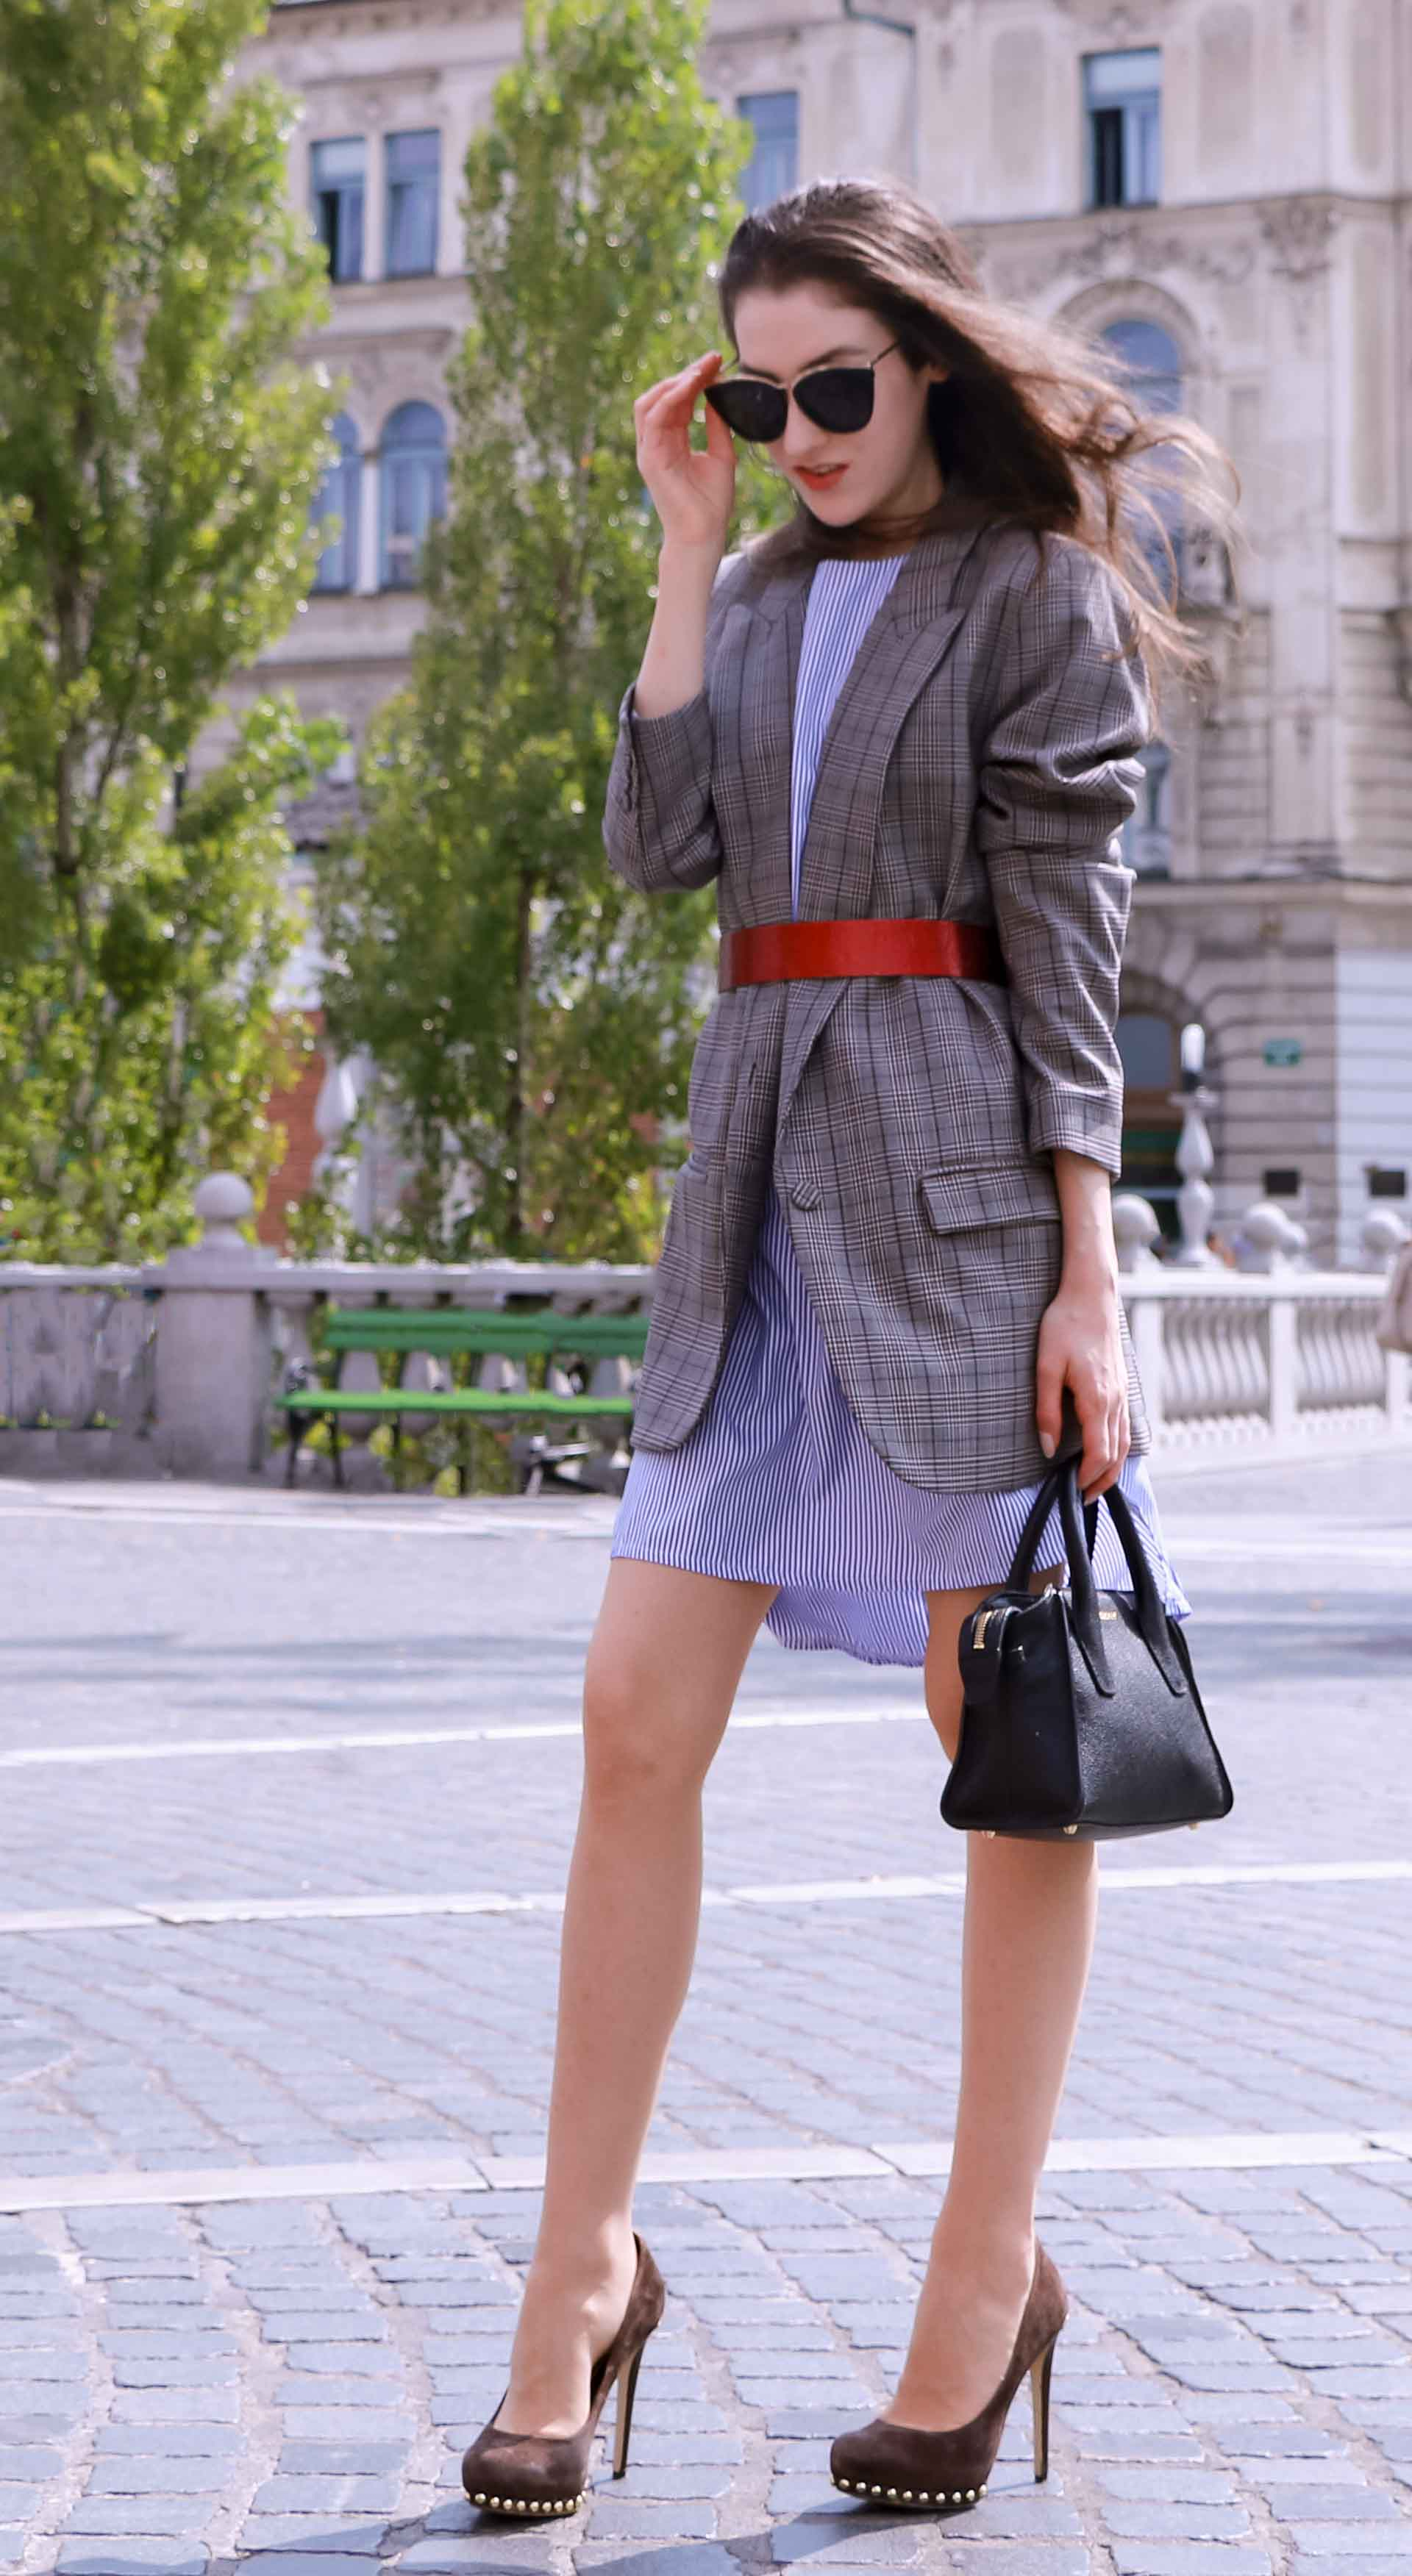 Veronika Lipar Fashion Blogger of Brunette from Wall Street wearing Erika Cavallini plaid blazer, blue striped shirtdress, red belt, brown court shoes, black top handle bag, Le Specs black shades while standing at the Prešeren square